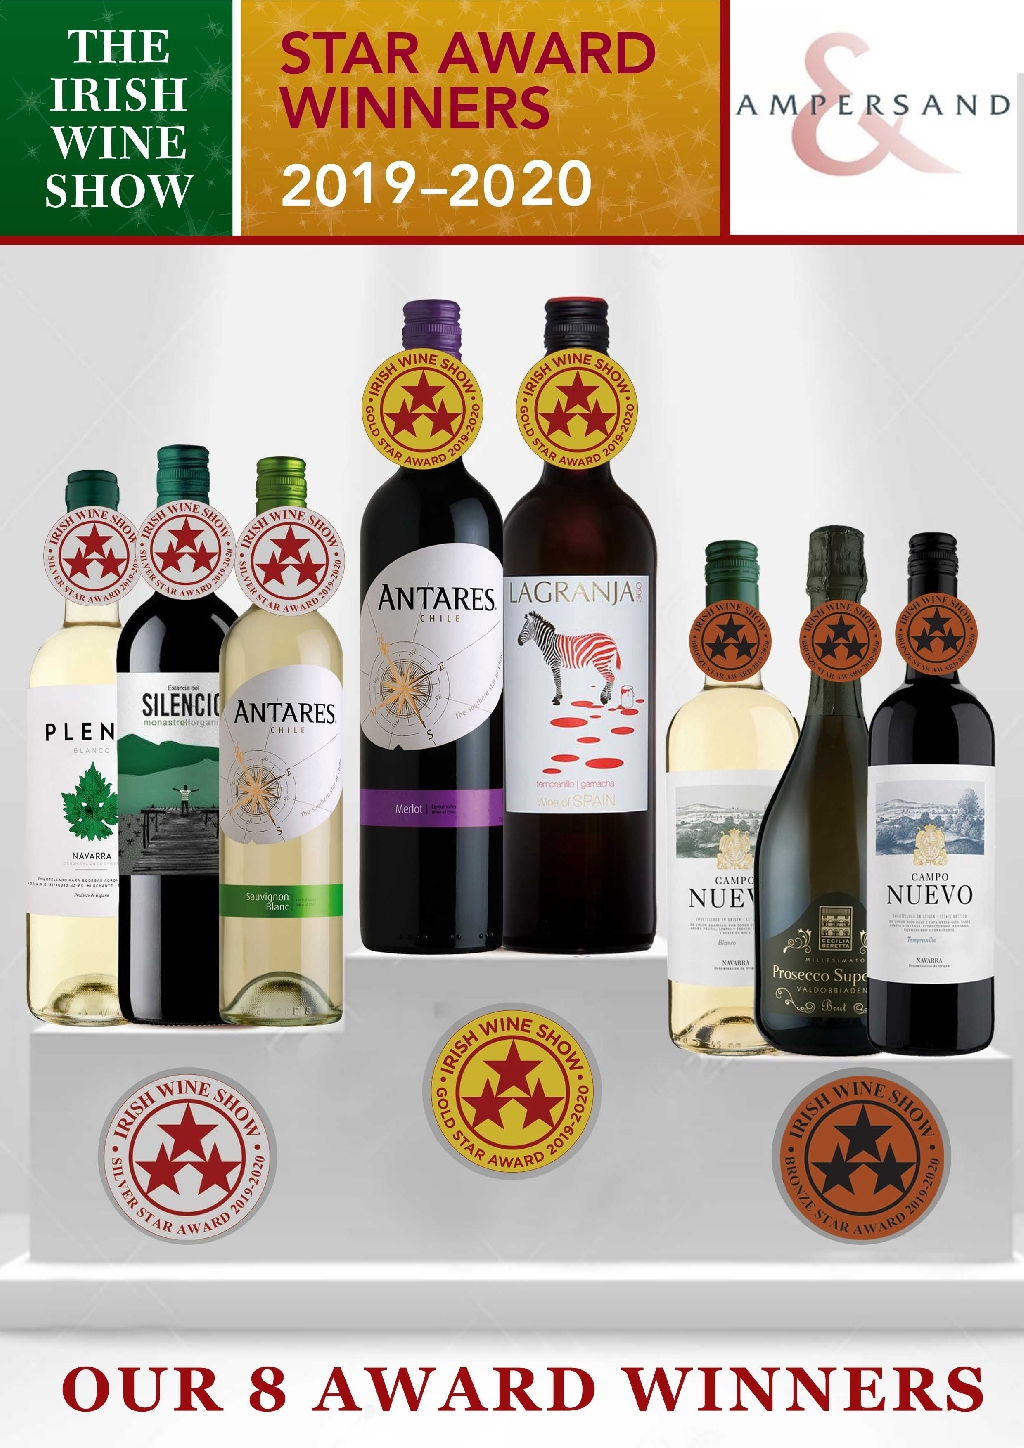 October 2019: Ampersand Win 8 Awards at the Irish Wine Show 2019